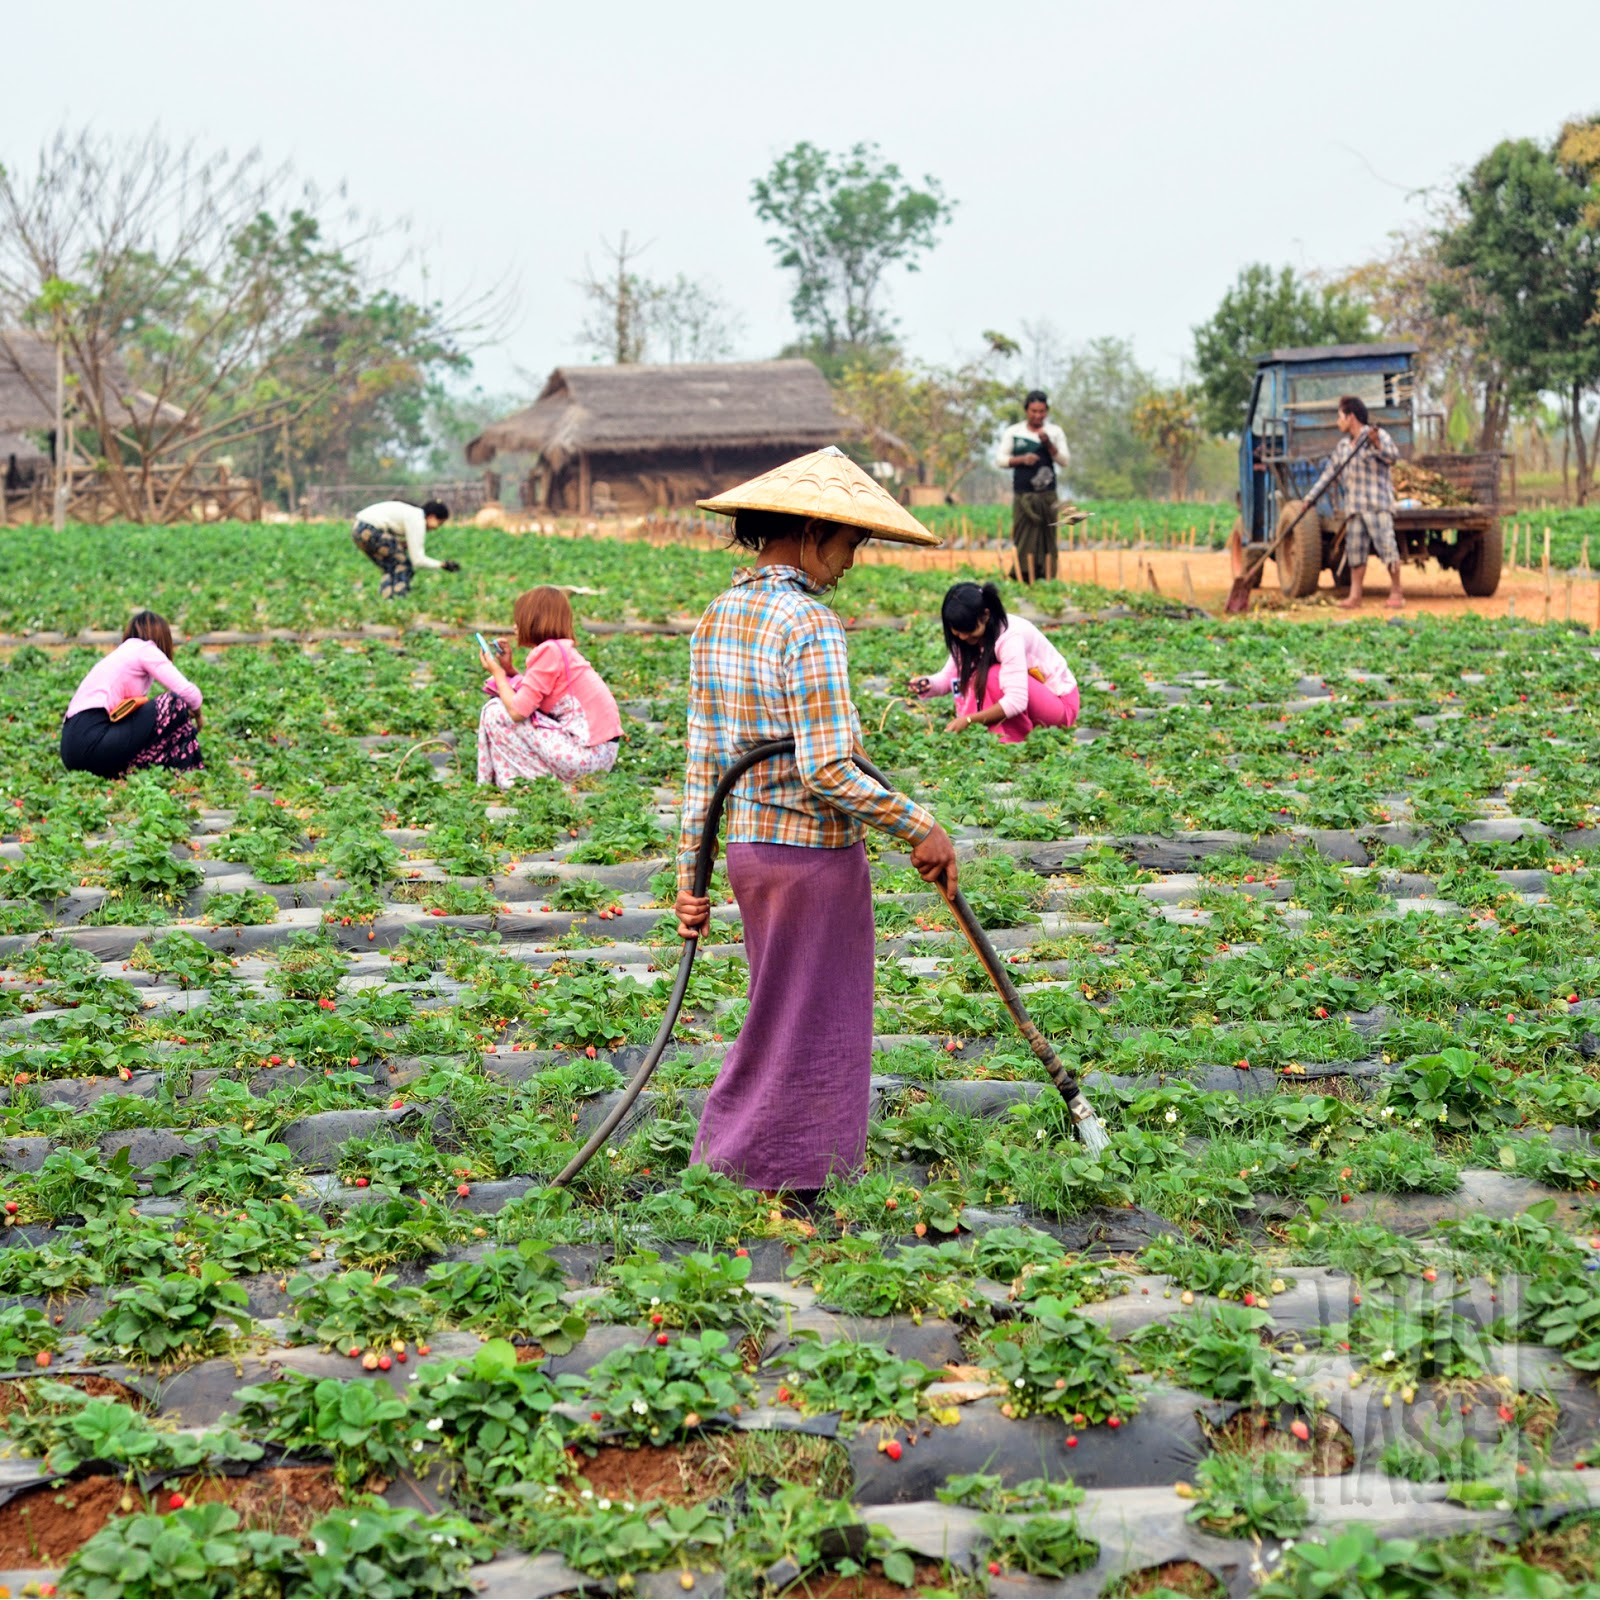 Workers on a strawberry farm near Pyin Oo Lwin, Myanmar.